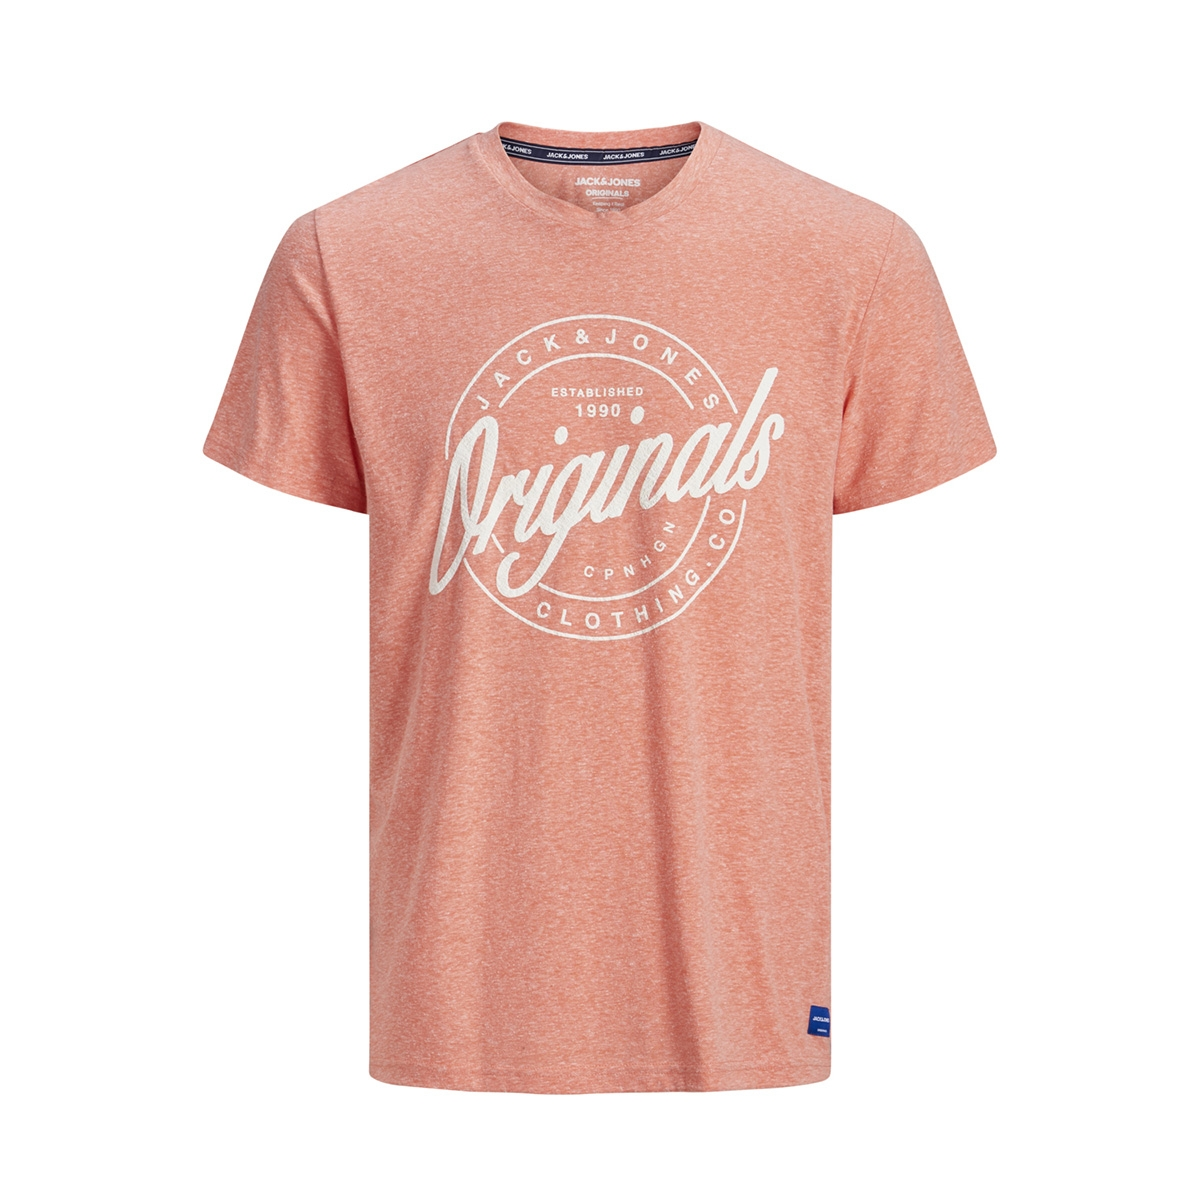 jorhazy tee ss crew neck 12152608 jack & jones t-shirt persimmon